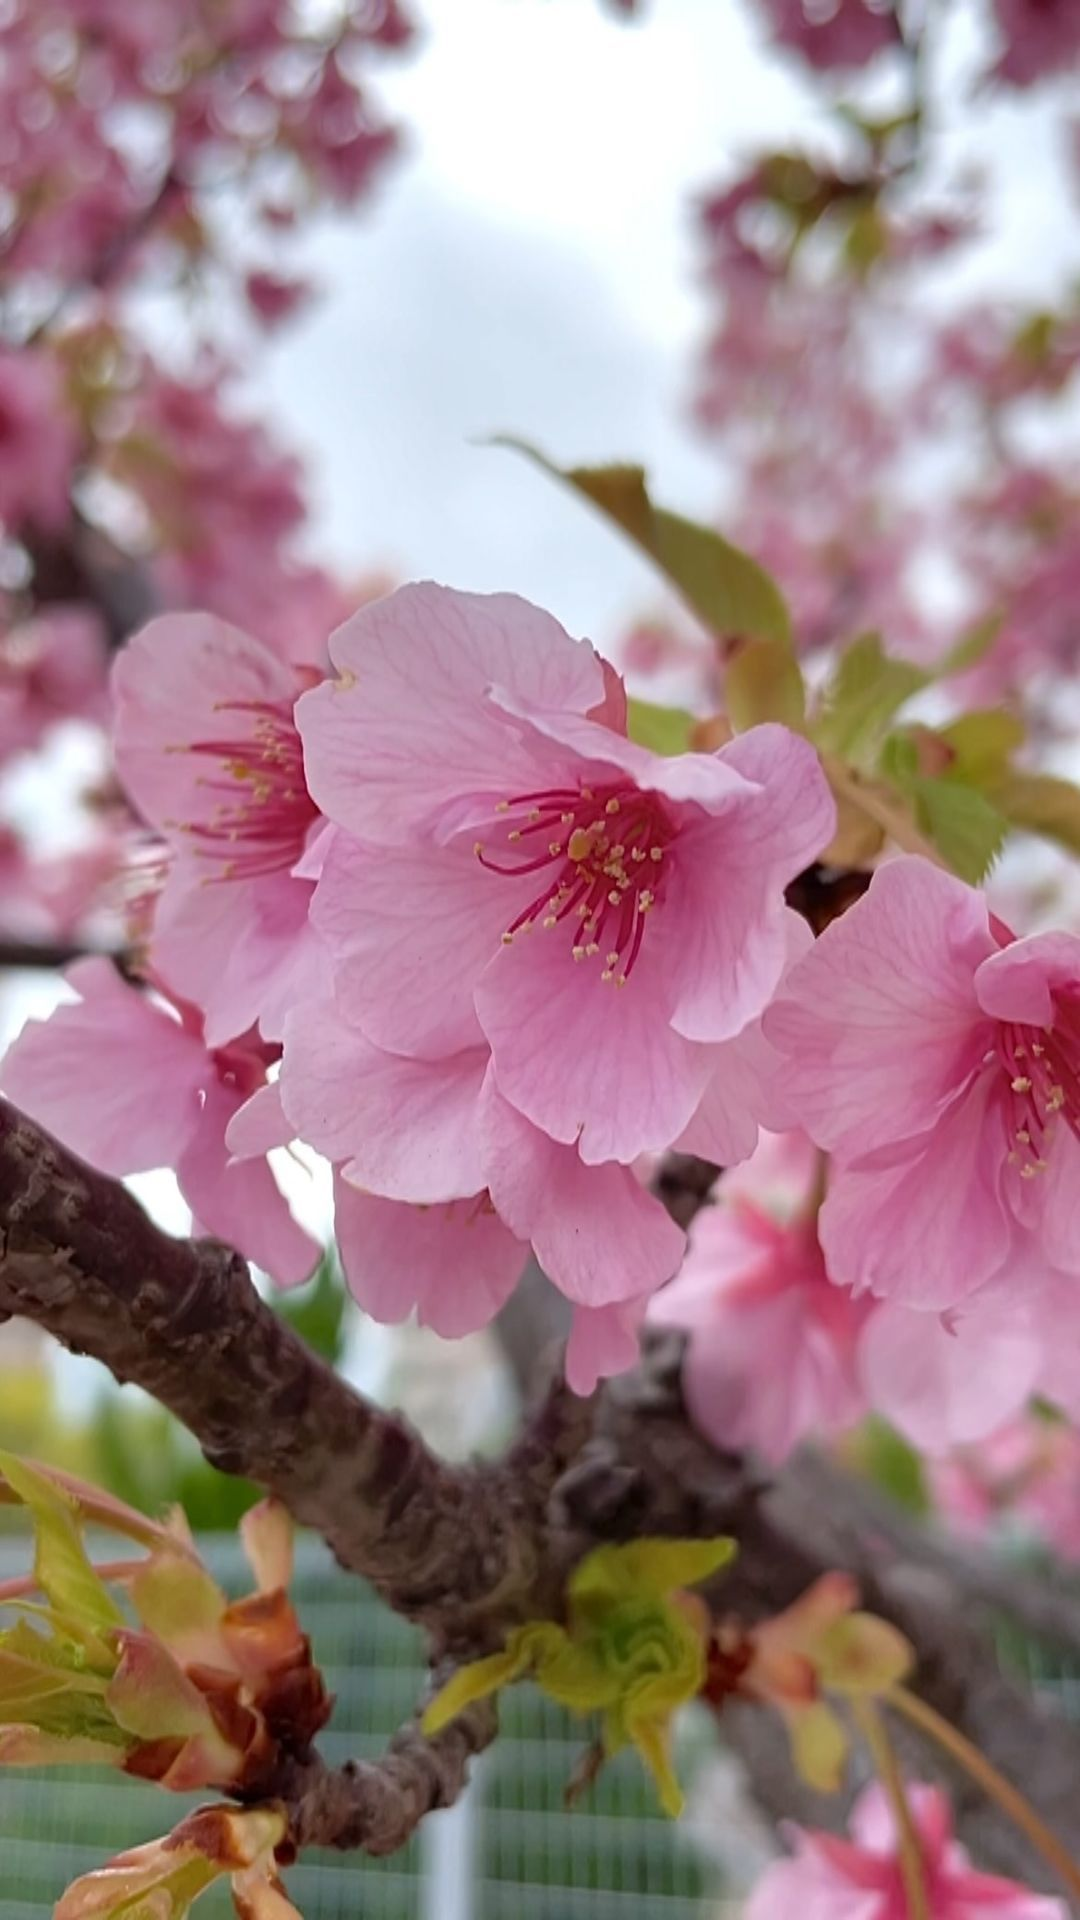 Imen Jebri On Instagram Early Sakura Blossoms In Kobe Japan These Flowers Are The Most Beautiful Thing You Can Picture In J In 2021 Japan Spring Flowers Blossom